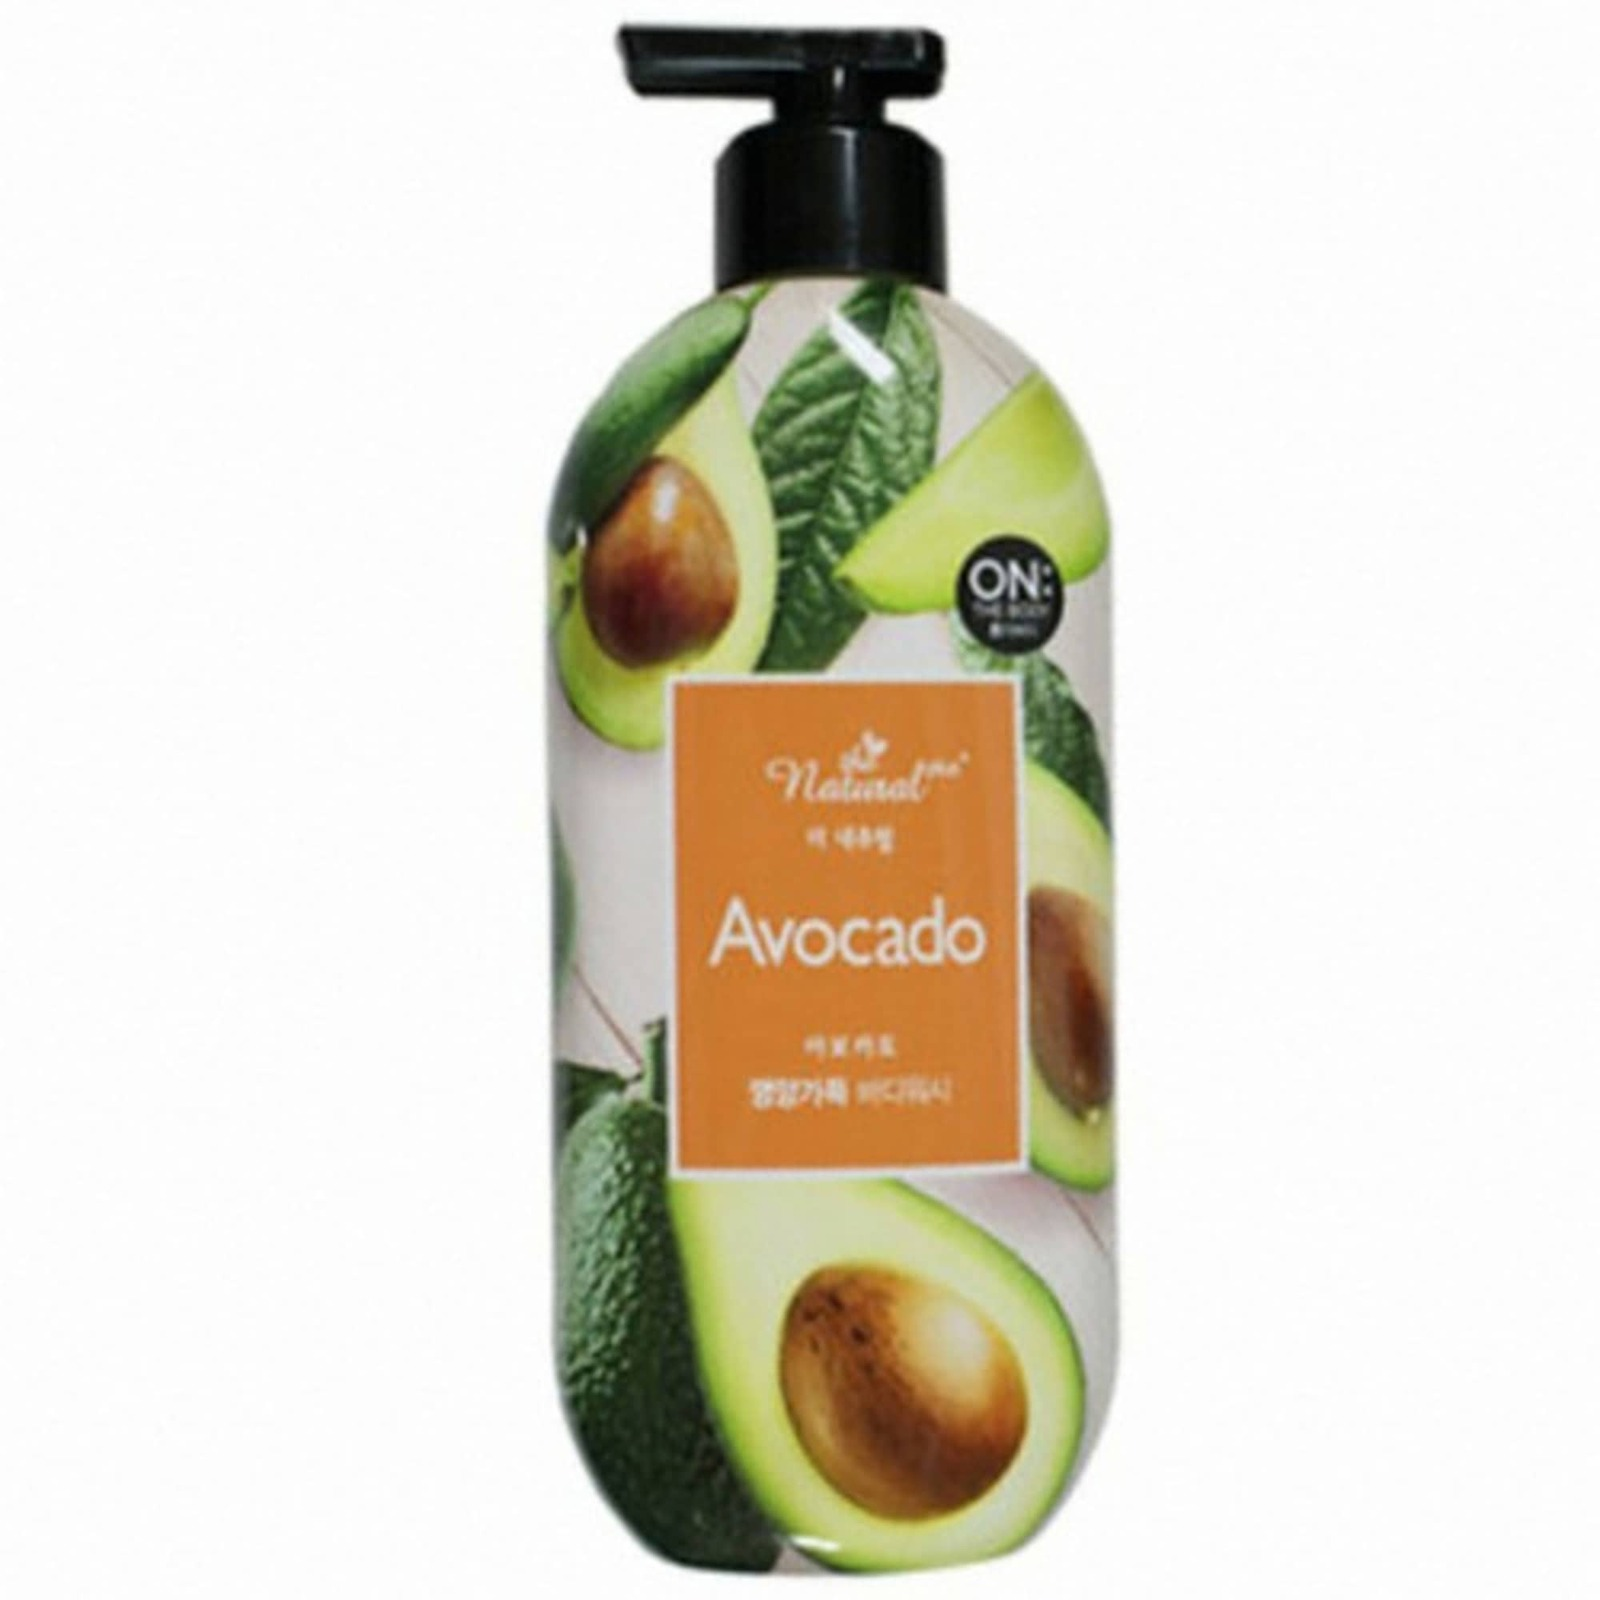 On The Body Avocado Superfood Body Wash